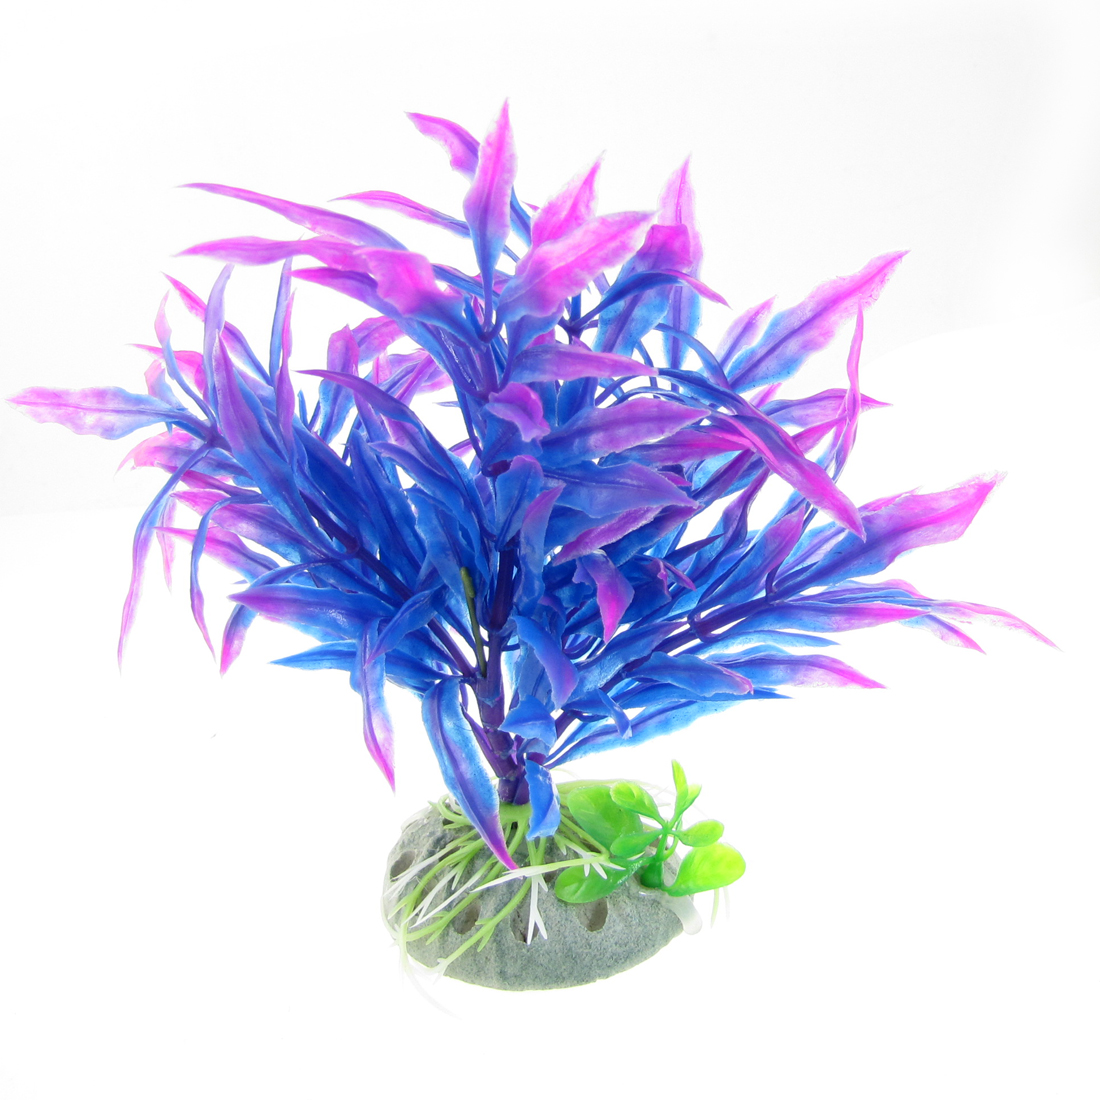 Aquascaping Purple Magenta Plastic Plants for Aquarium Tank